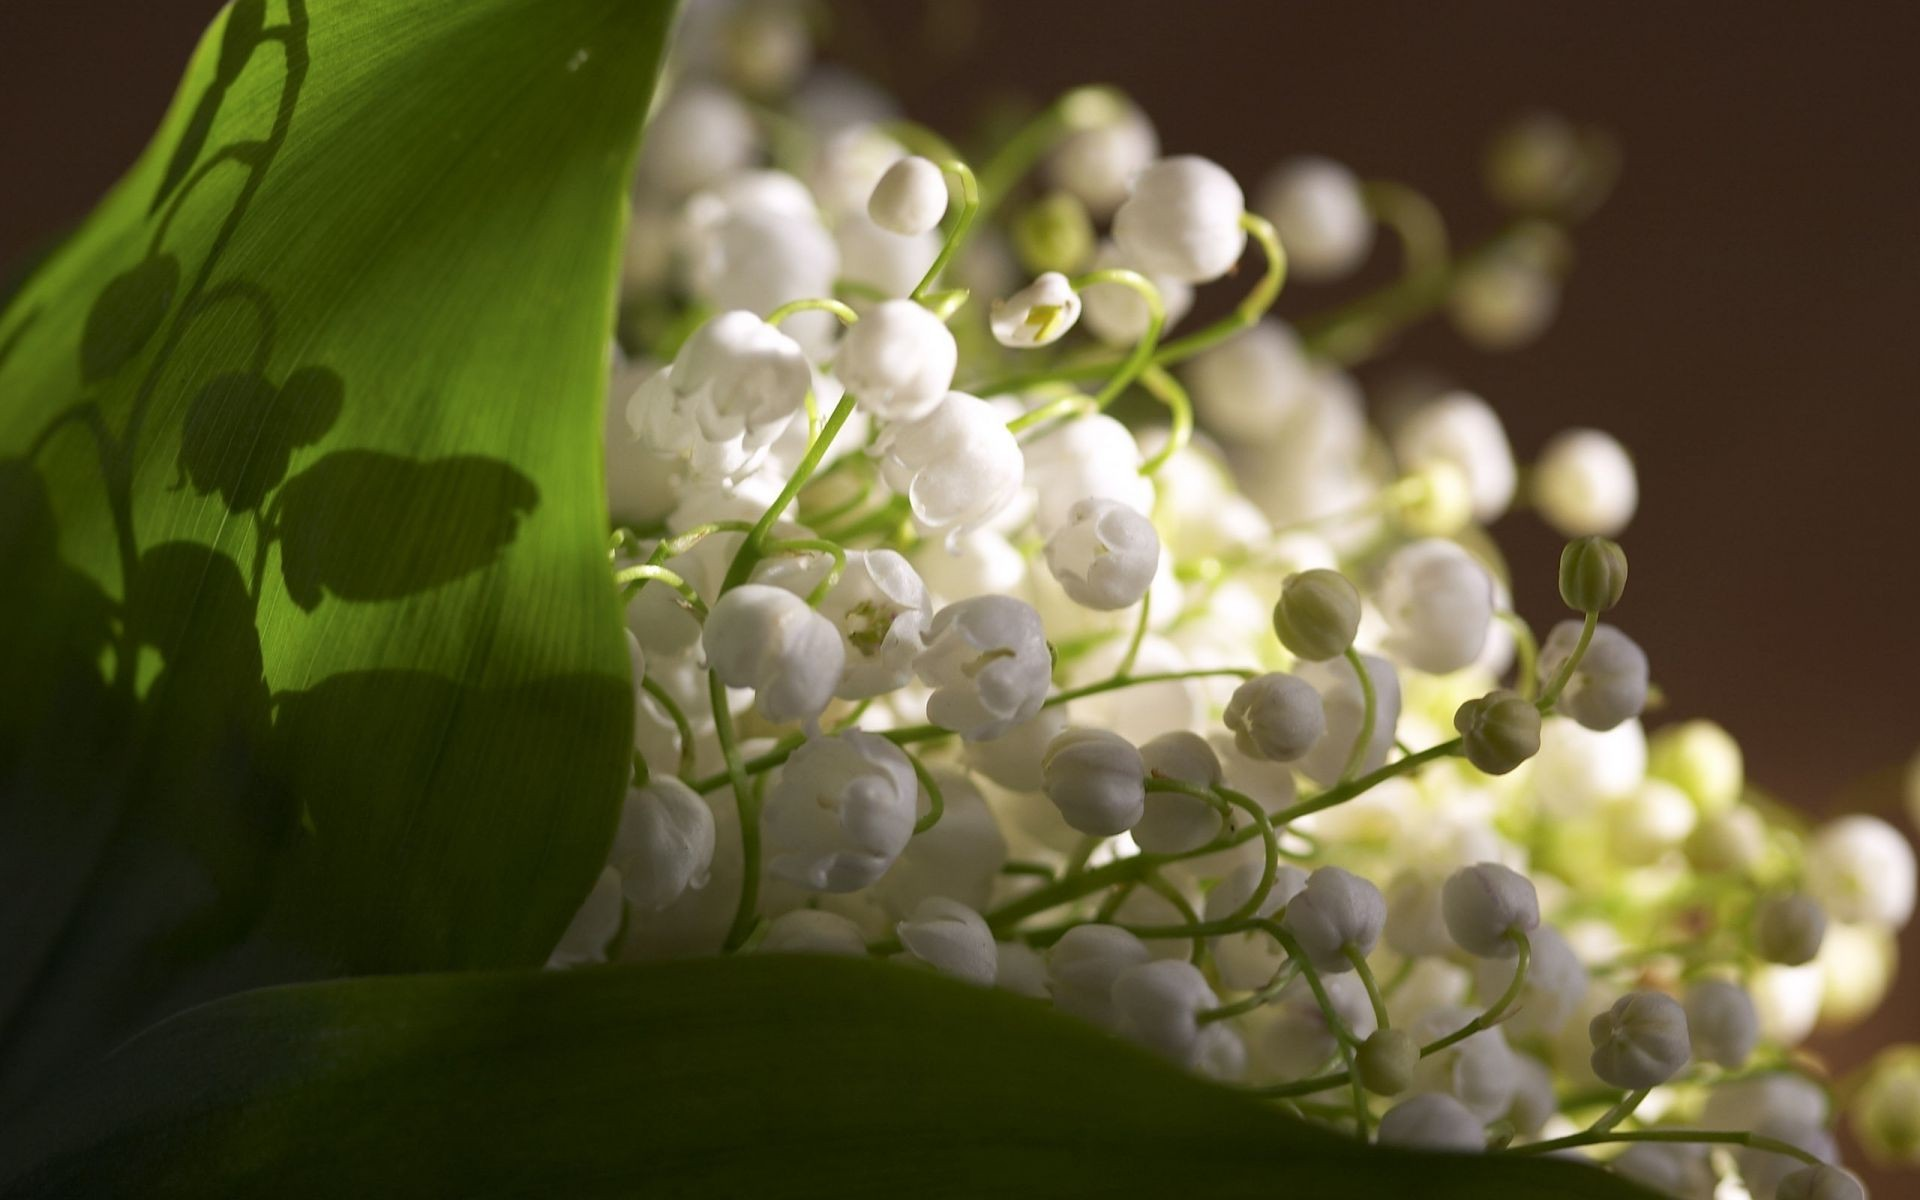 White flowers of lily of the valley android wallpapers for free izmirmasajfo